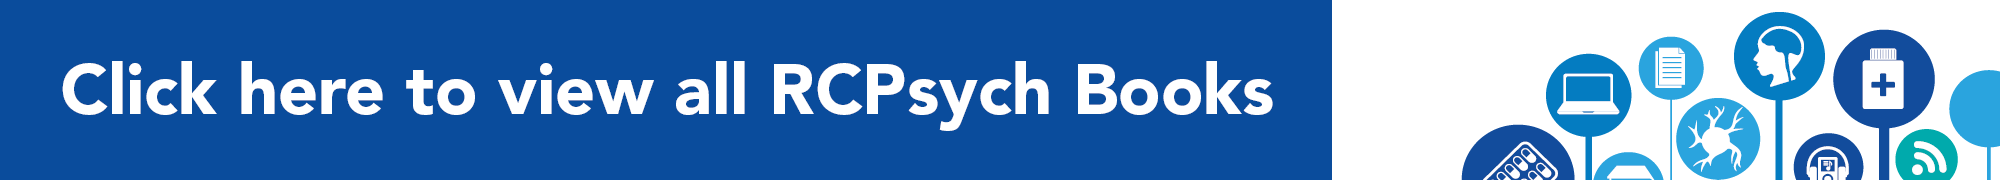 RCPsych Books Banner